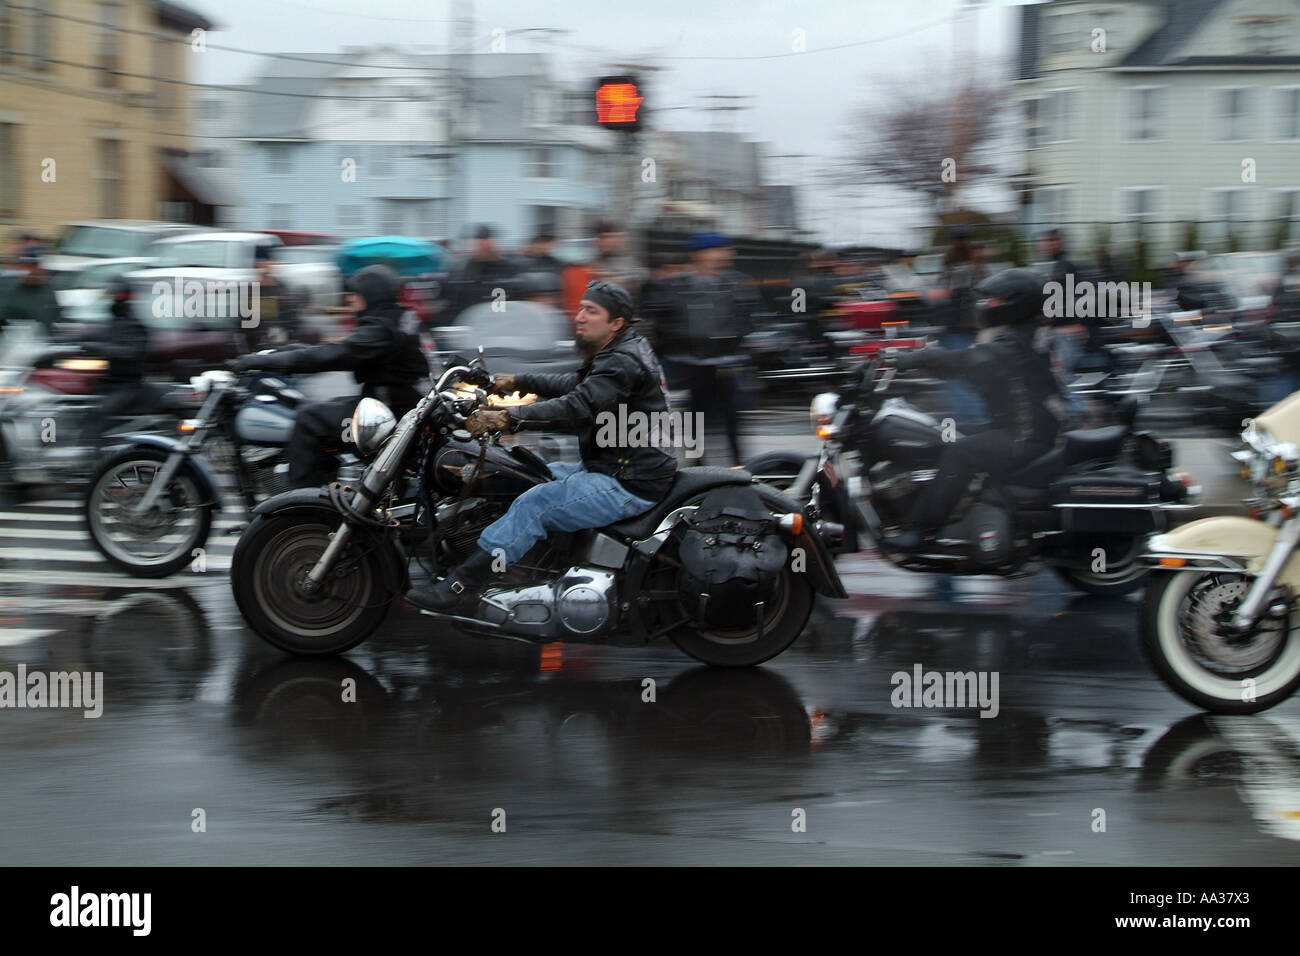 Hells Angels Funeral Motorcycle Club Members At Funeral For Member Stock Photo Royalty Free